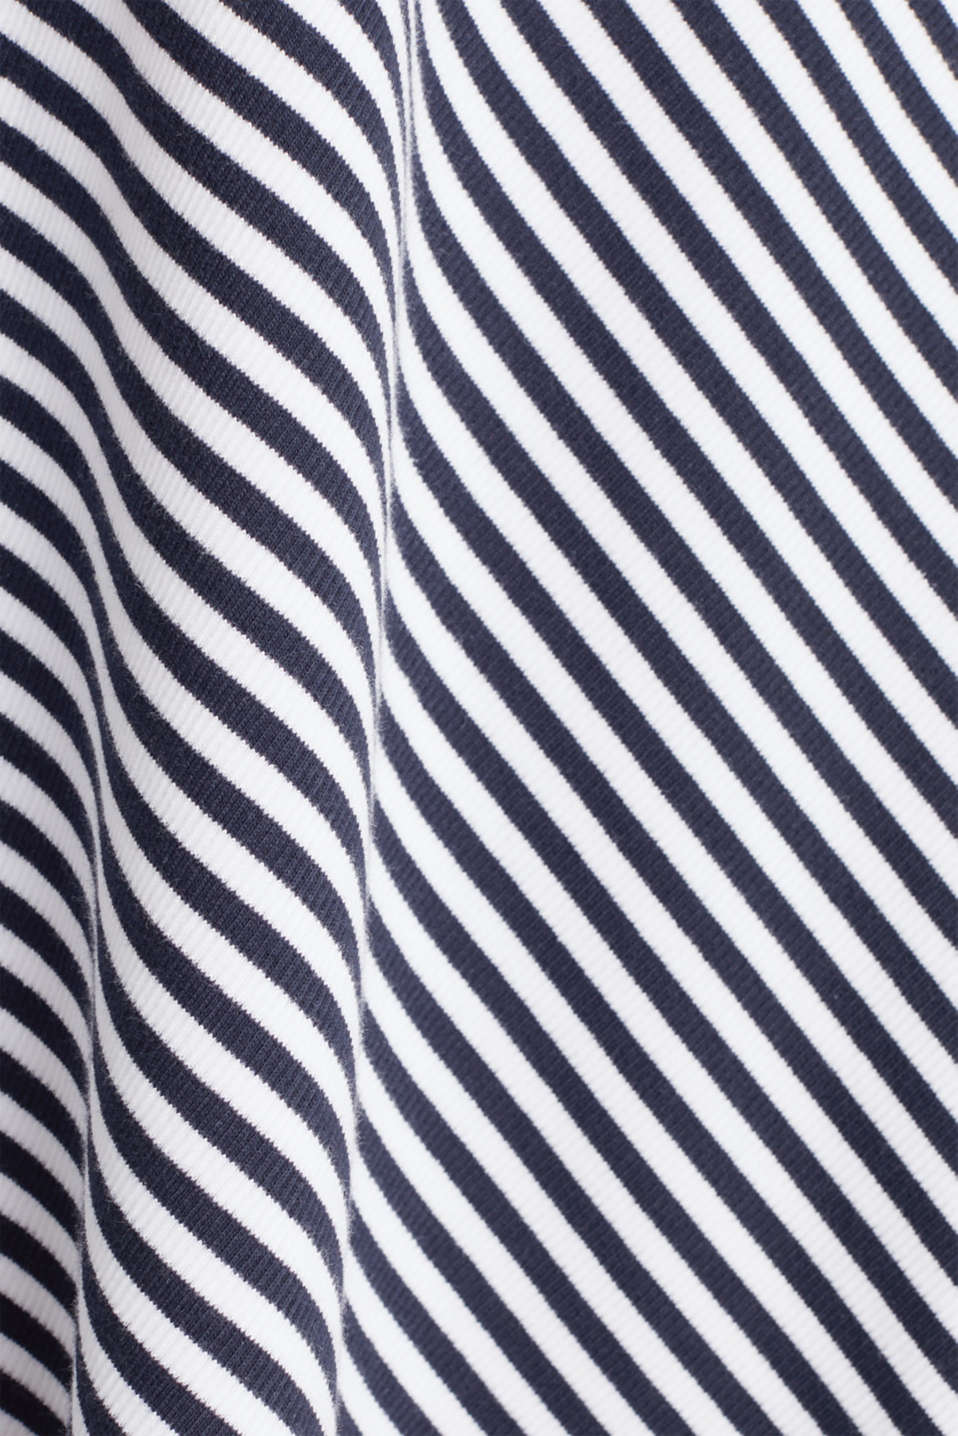 A-line skirt made of striped jersey, NAVY, detail image number 3